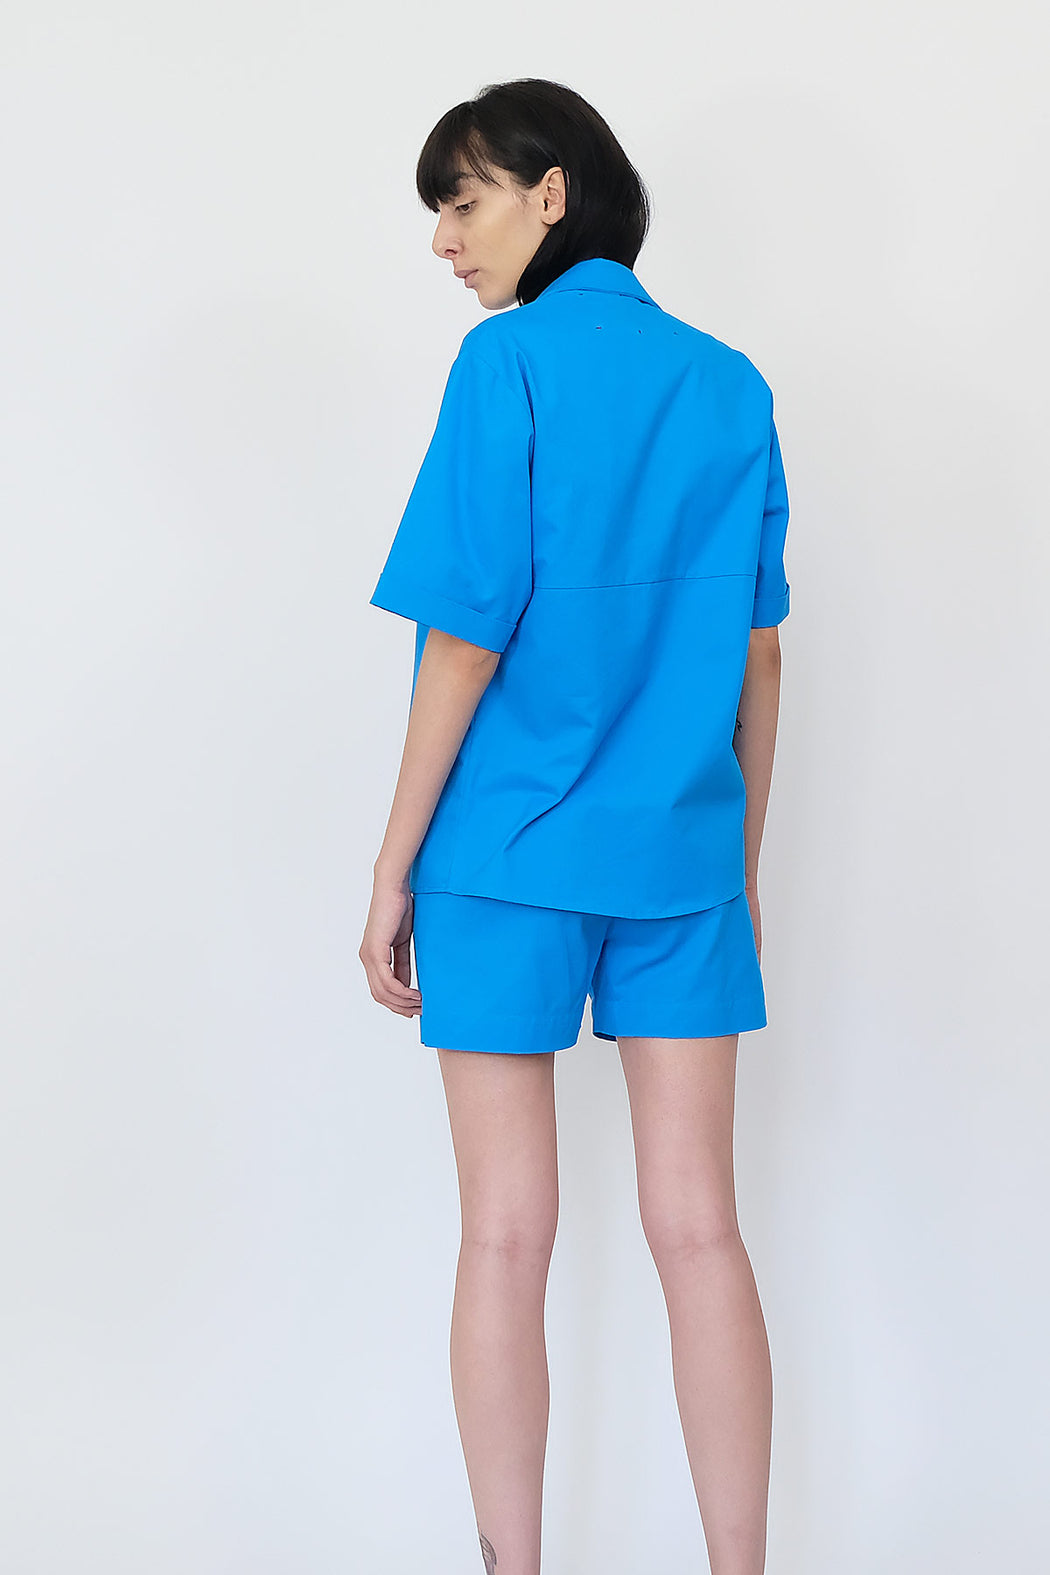 LF Short Sleeve Cotton Shirt in Bright Blue